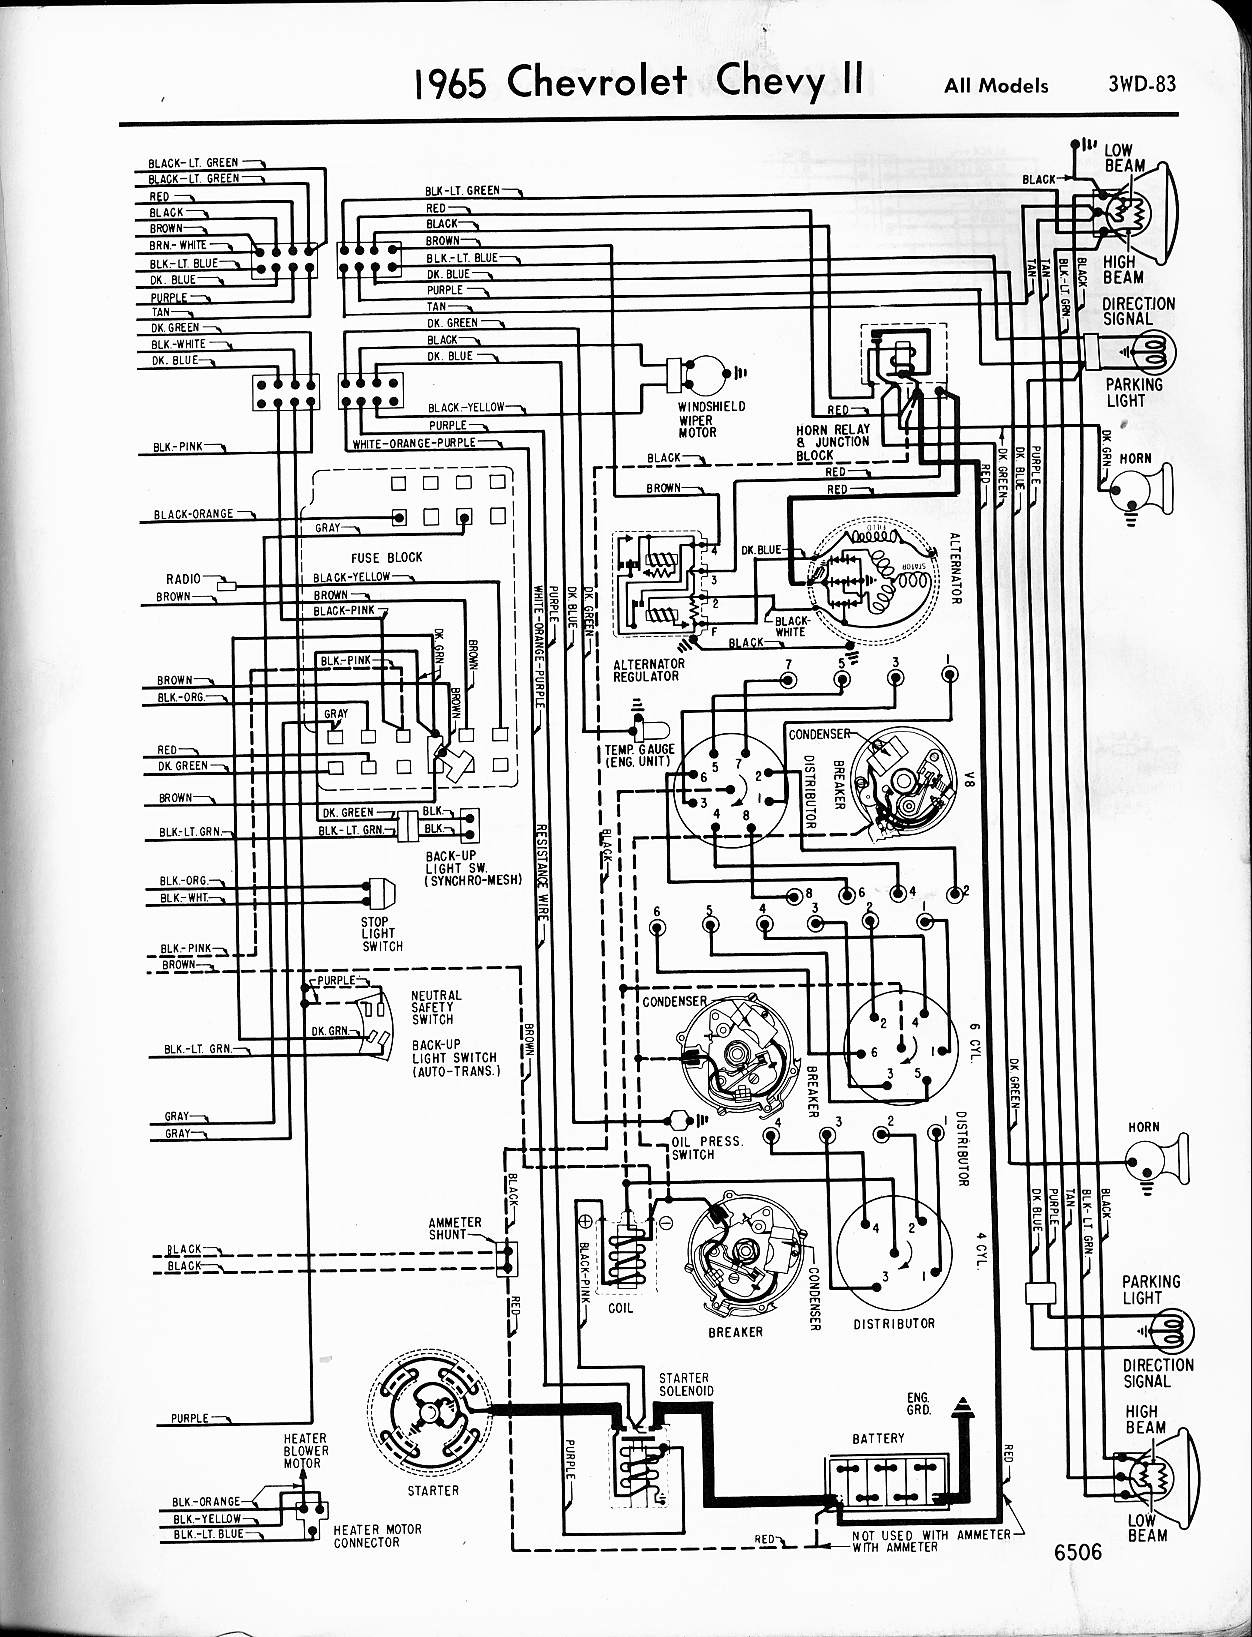 Drag Car Wiring 1970 El Camino Diagram 1973 - Wiring Diagram ...  Chevelle Wiring Diagram Electric Windows on 1970 chevelle oil sending unit, 1970 chevelle schematics, 1970 chevelle wiring blueprints, 1970 chevelle tires, 1970 chevelle ss fender emblem location, 1970 chevelle lights, 67 chevelle horn diagram, 1970 chevelle air conditioning, 1970 chevelle alternator, 1970 chevelle crankshaft, 1970 chevelle cowl induction relay location, 1970 chevelle air cleaner, 1967 chevelle horn diagram, chevelle ac diagram, 1970 chevelle neutral safety switch, 1970 chevelle carburetor, 1970 chevelle wiring harness, 1970 chevelle transmission, 1970 chevelle clock, 1970 chevelle fuel gauge wiring,